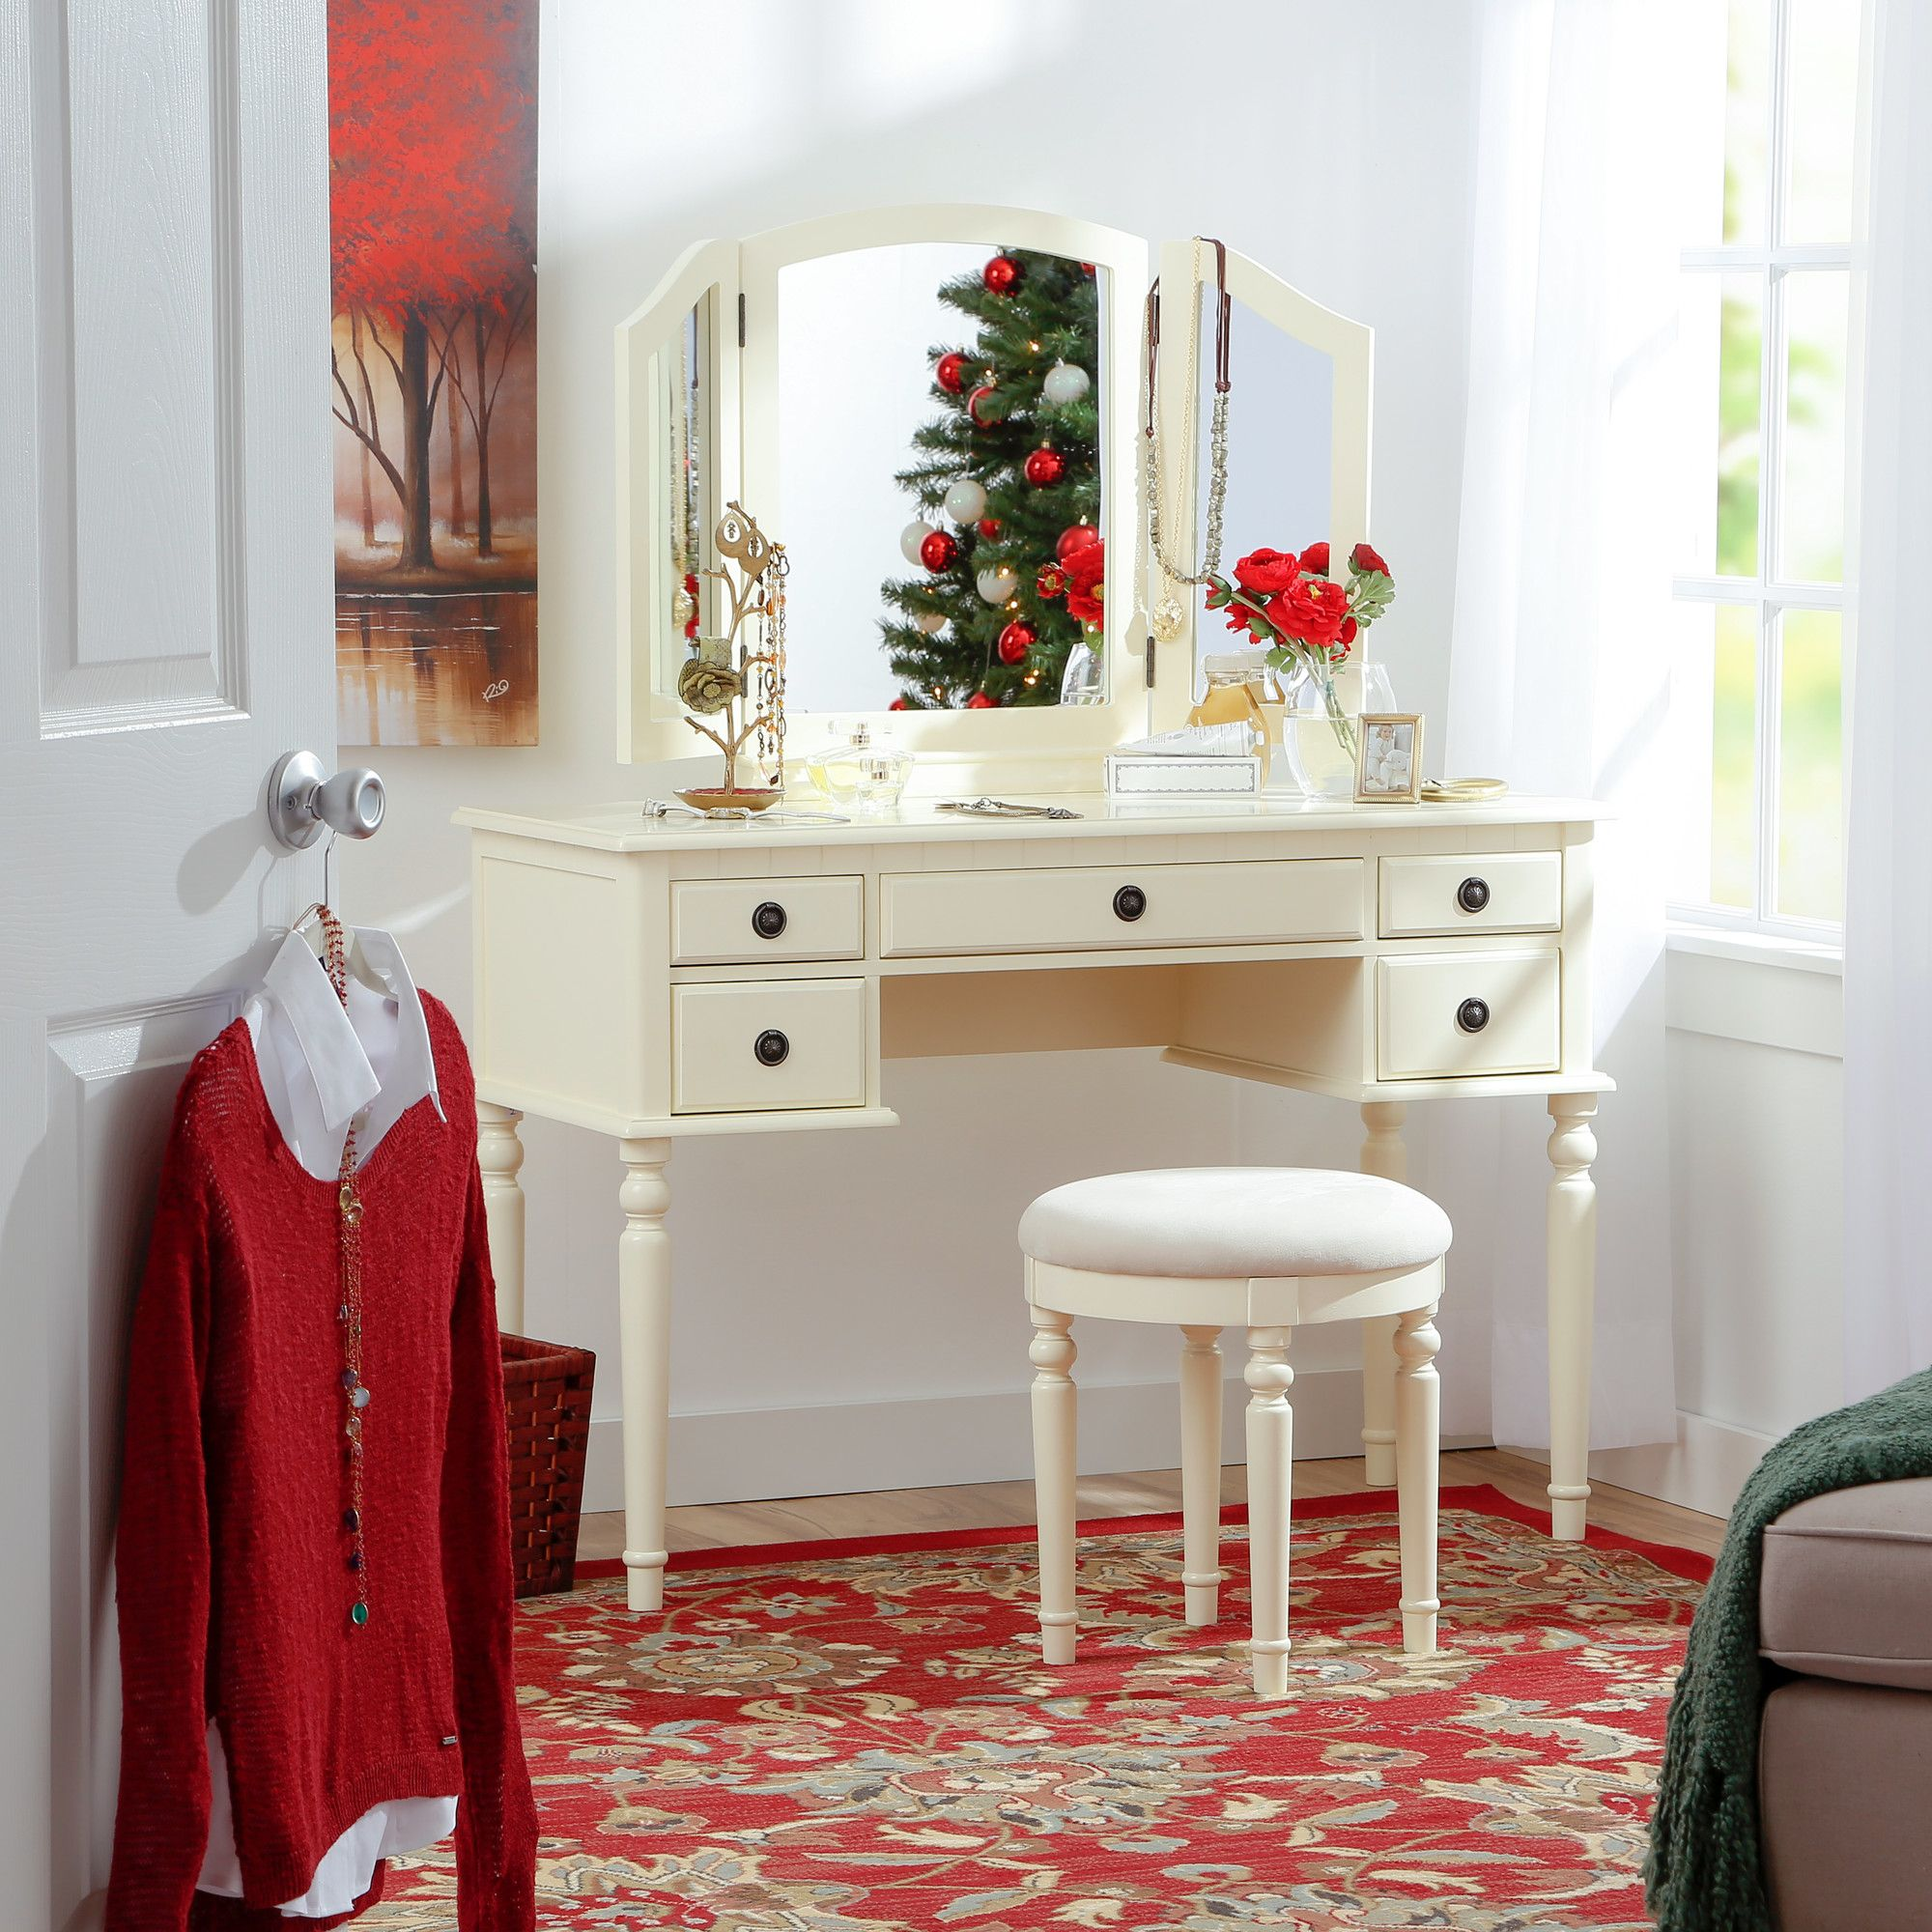 Online Home Store For Furniture, Decor